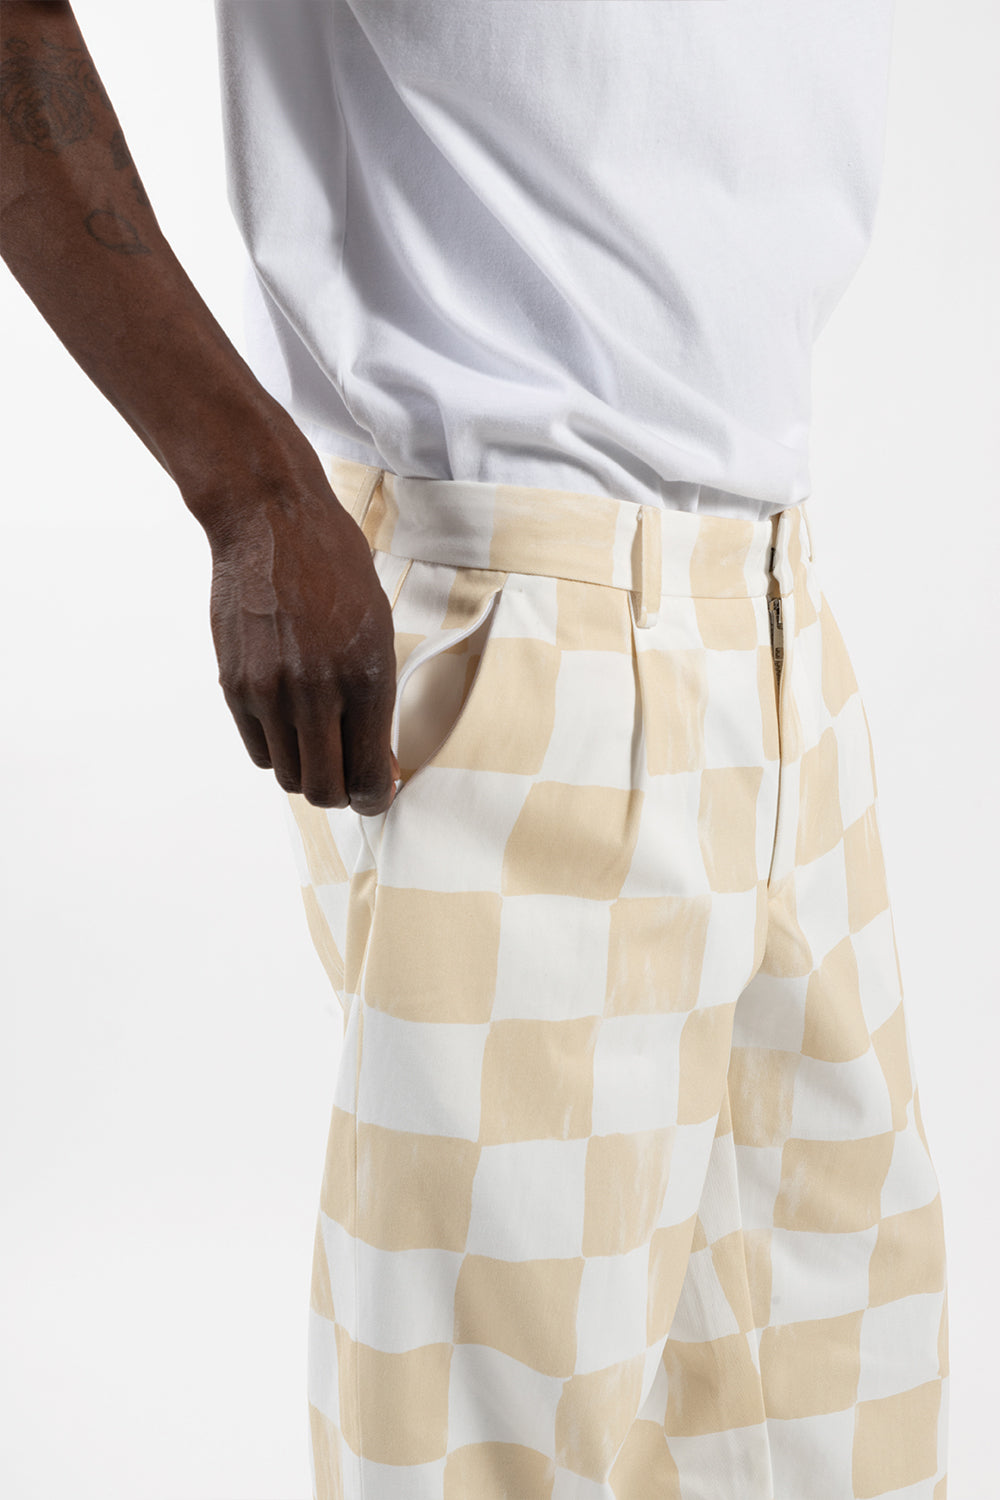 reception-clothing-club-pant-white-beige